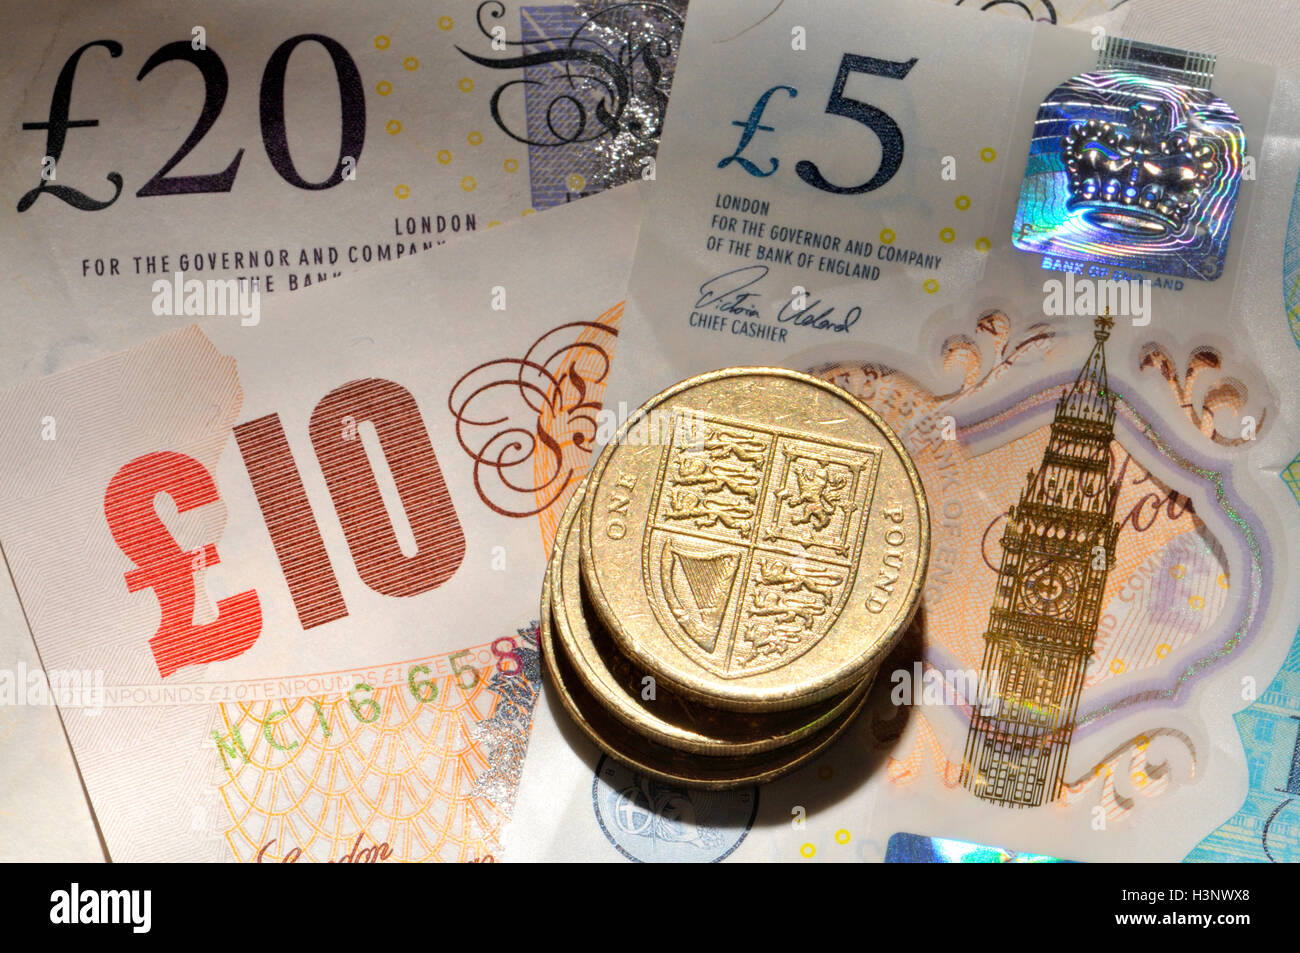 British money - pound coins on notes, including new (2016) plastic £5 - Stock Image